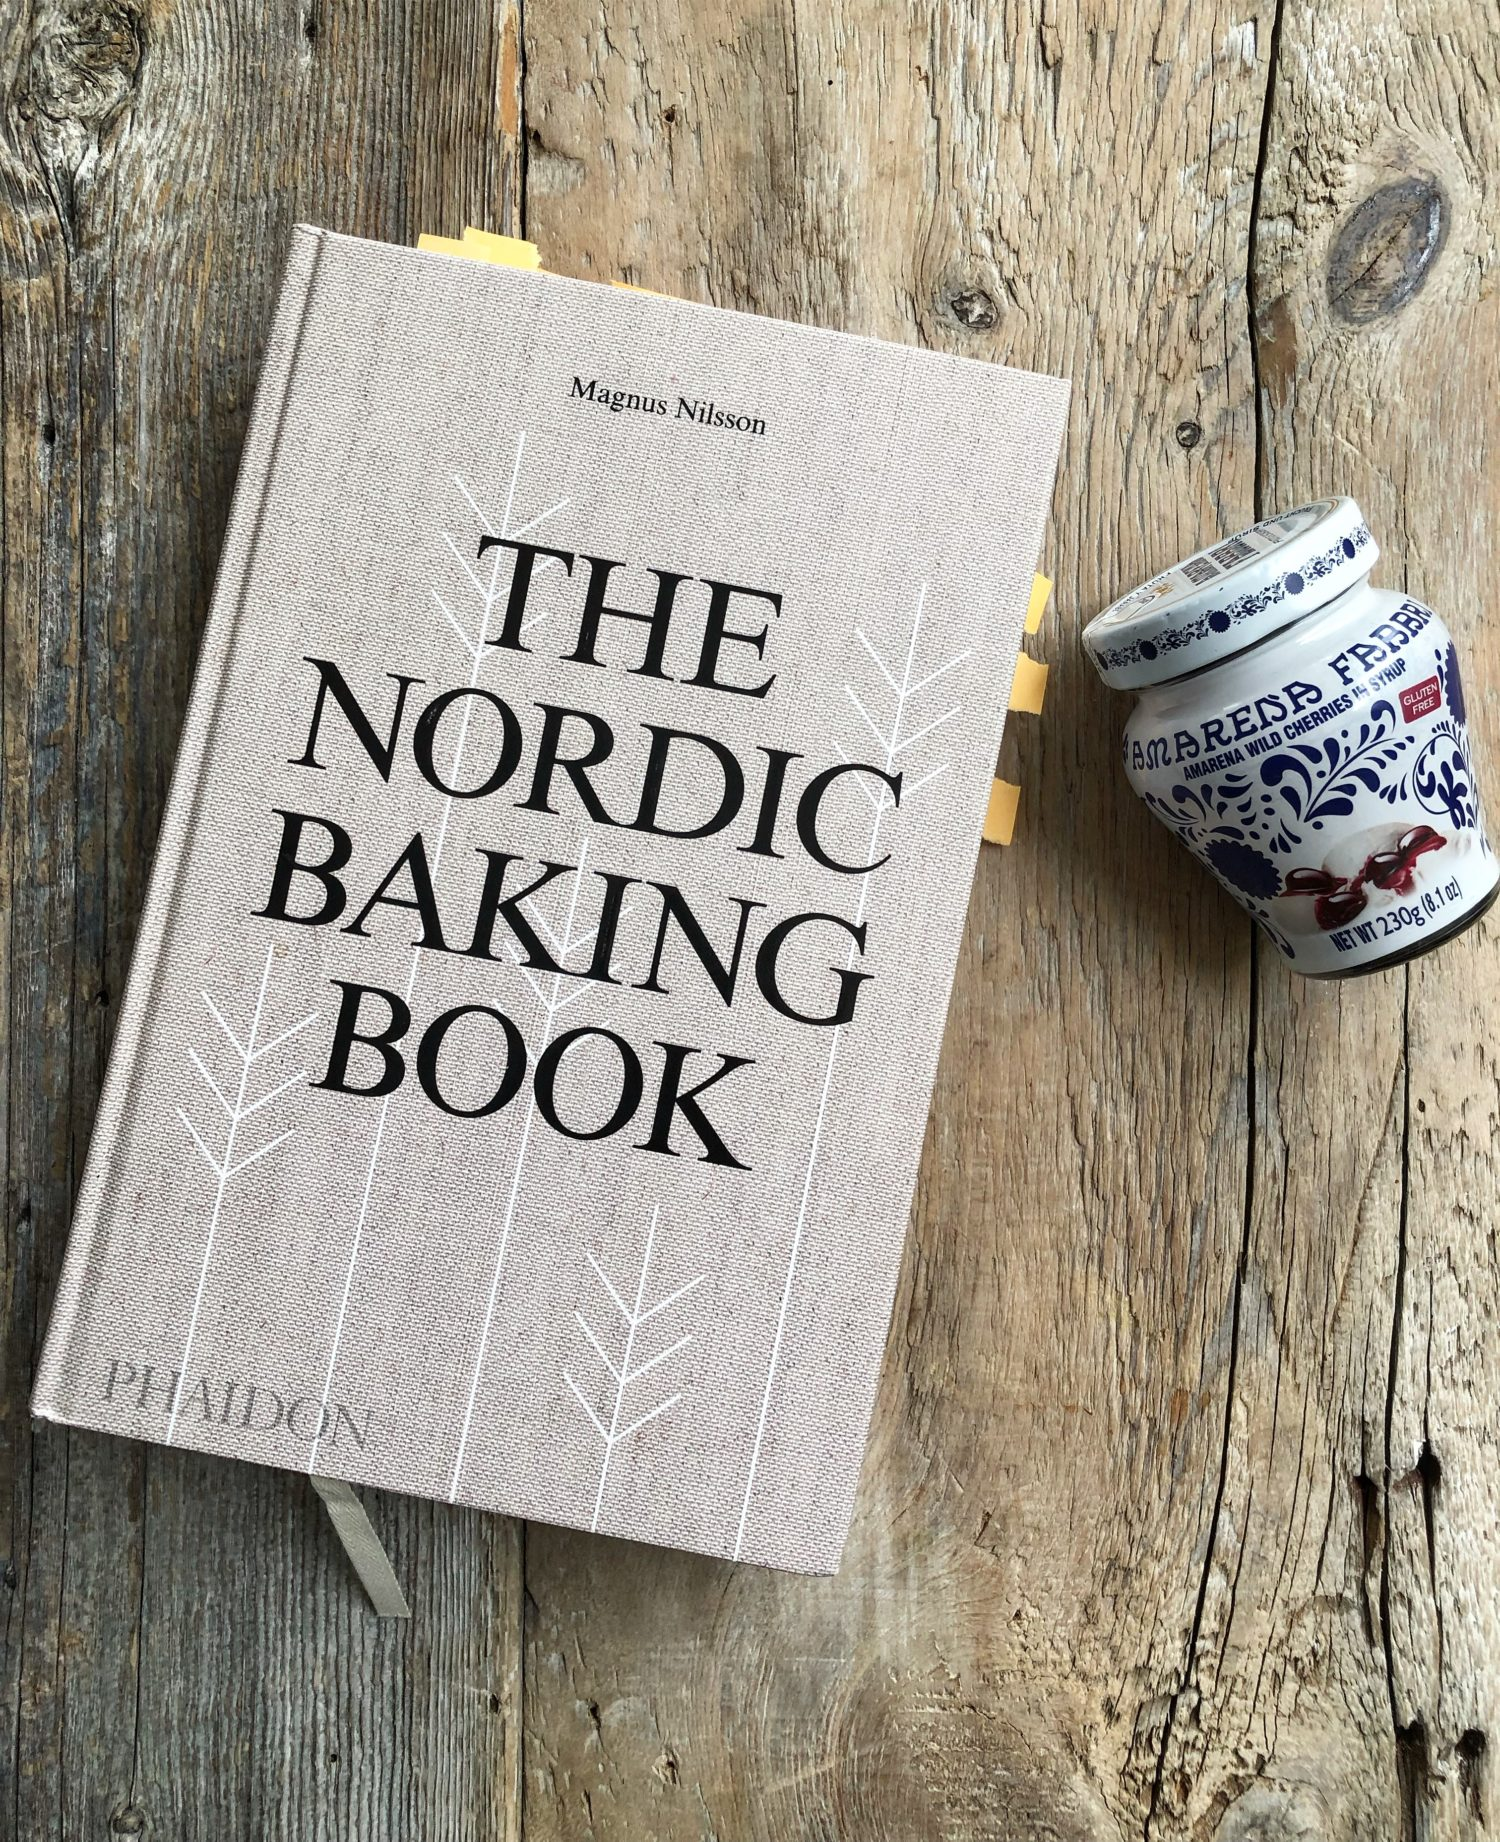 Swedish Rice Pudding with Sour Cherries in Syrup from The Nordic Baking Book by Magnus Nilsson